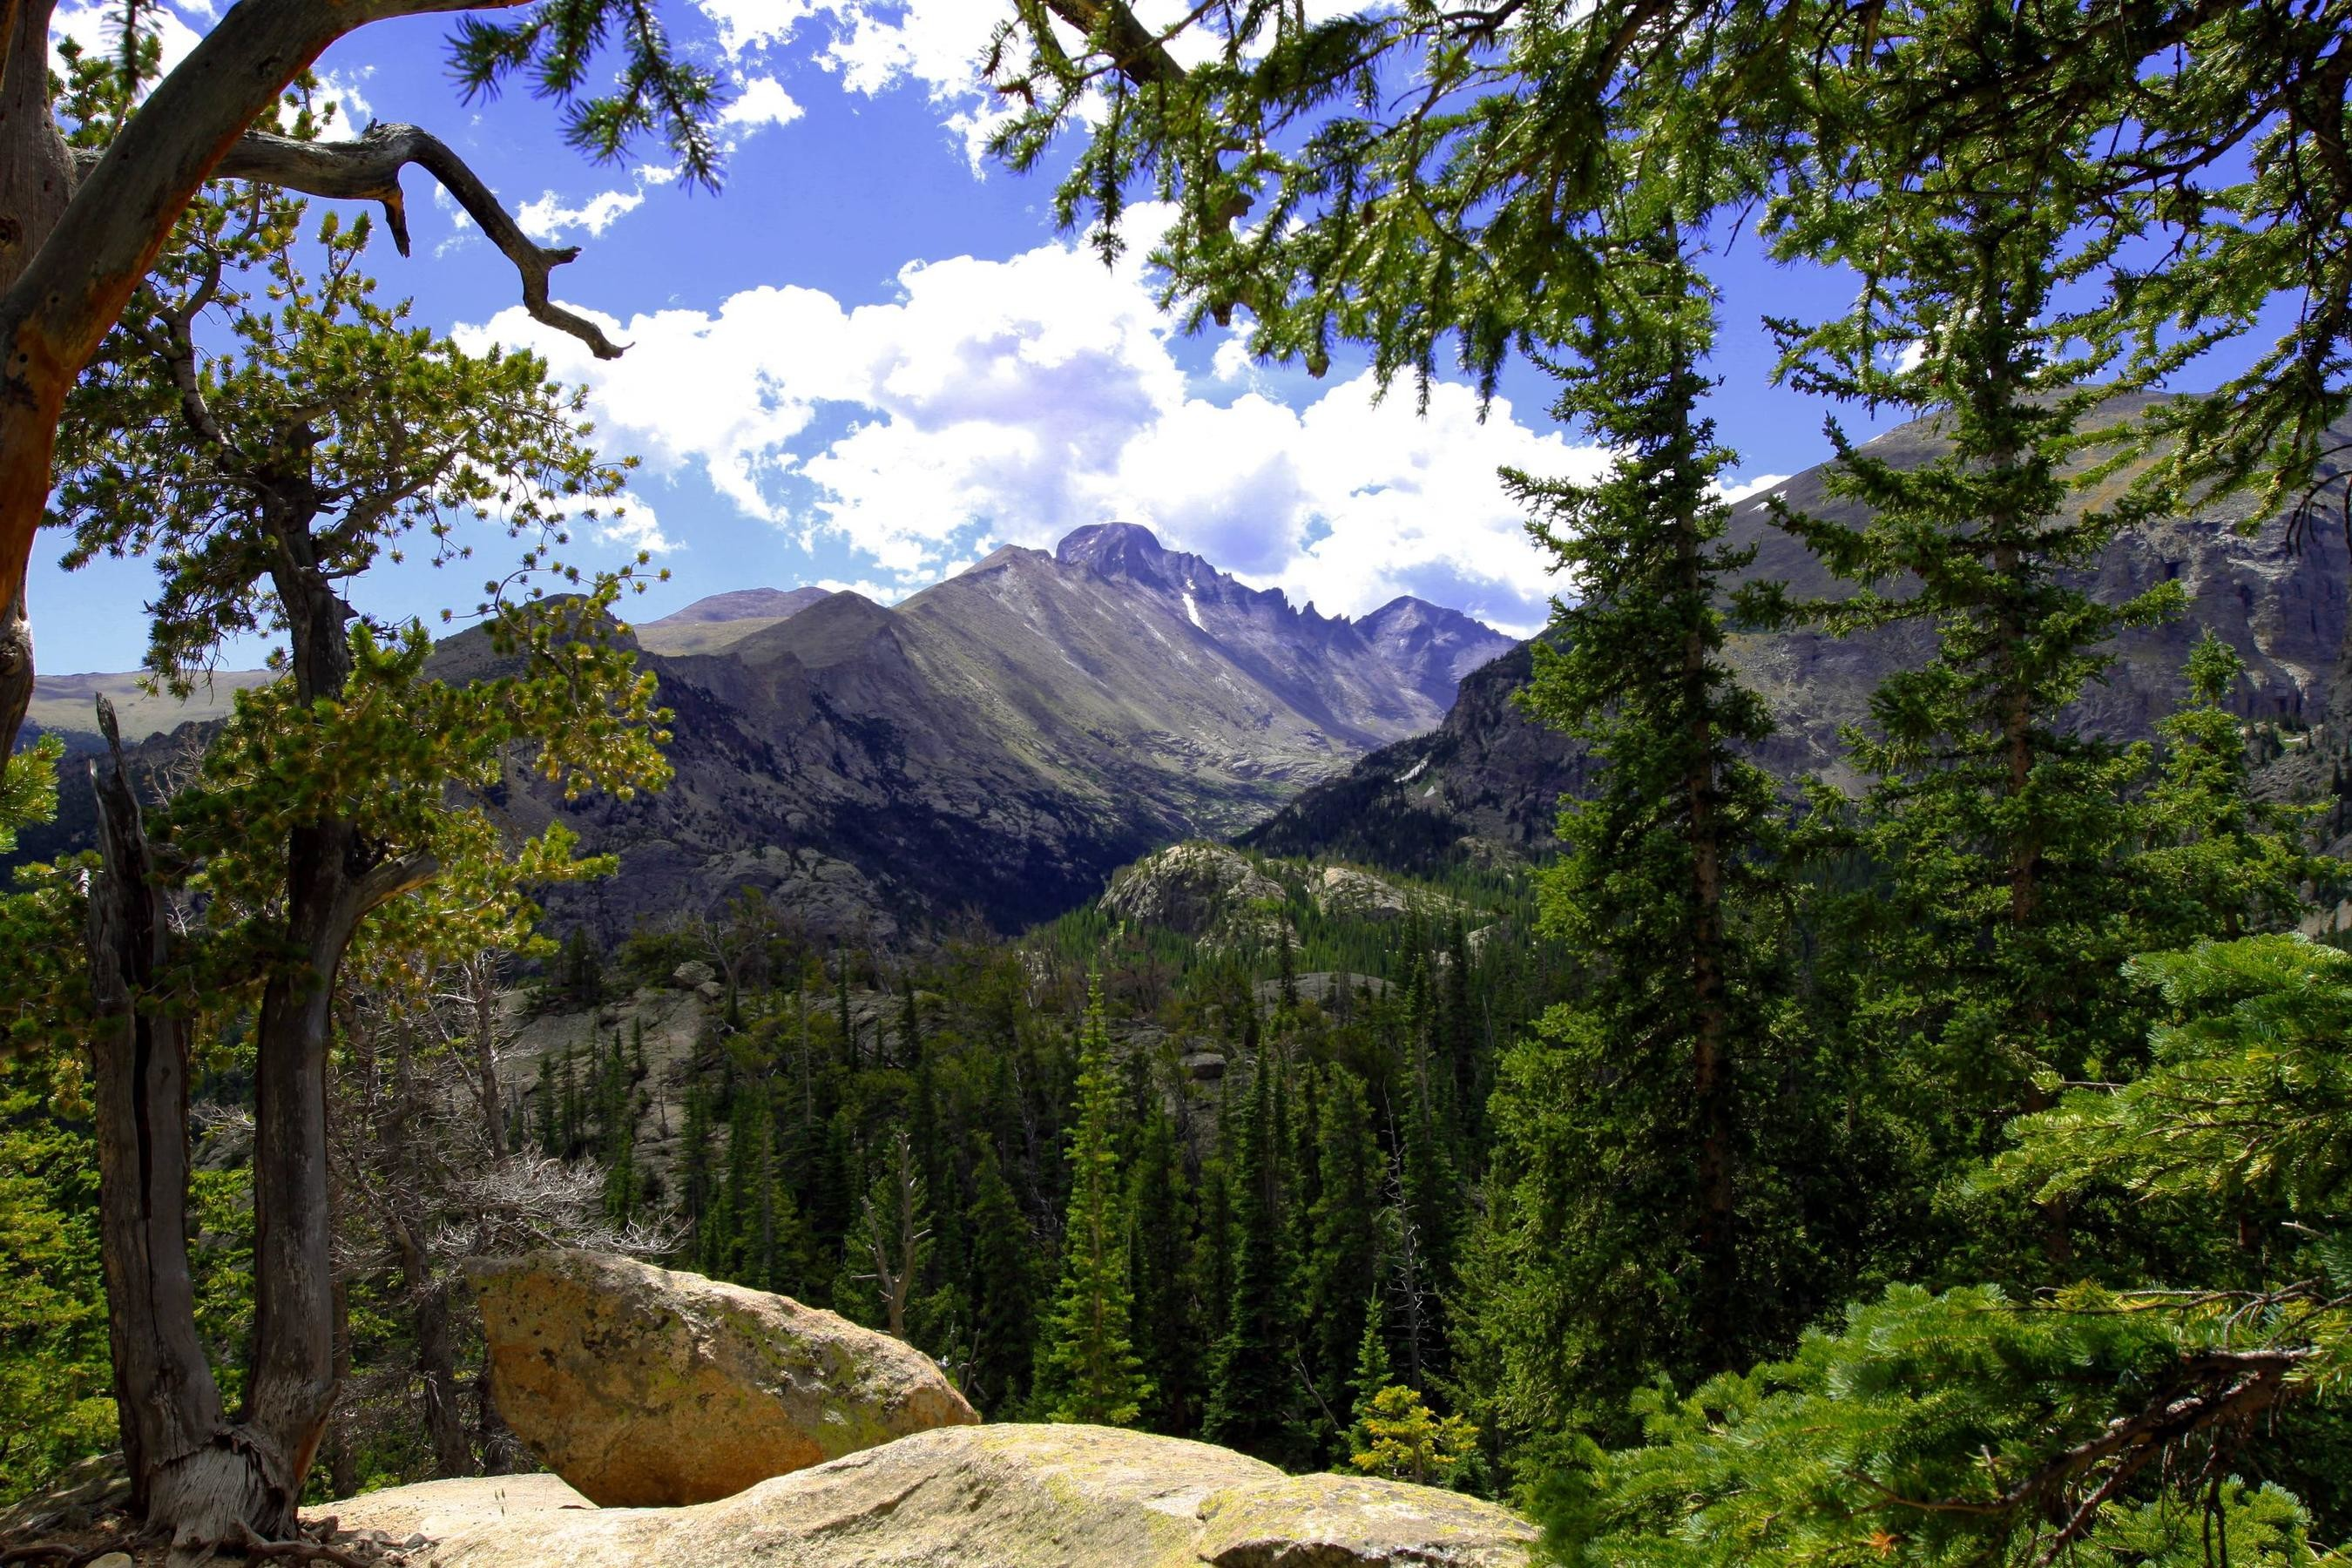 Rocky Mountain National Park Wallpapers Wallpaper   HD Wallpapers    Pinterest   3d wallpaper and Wallpaper